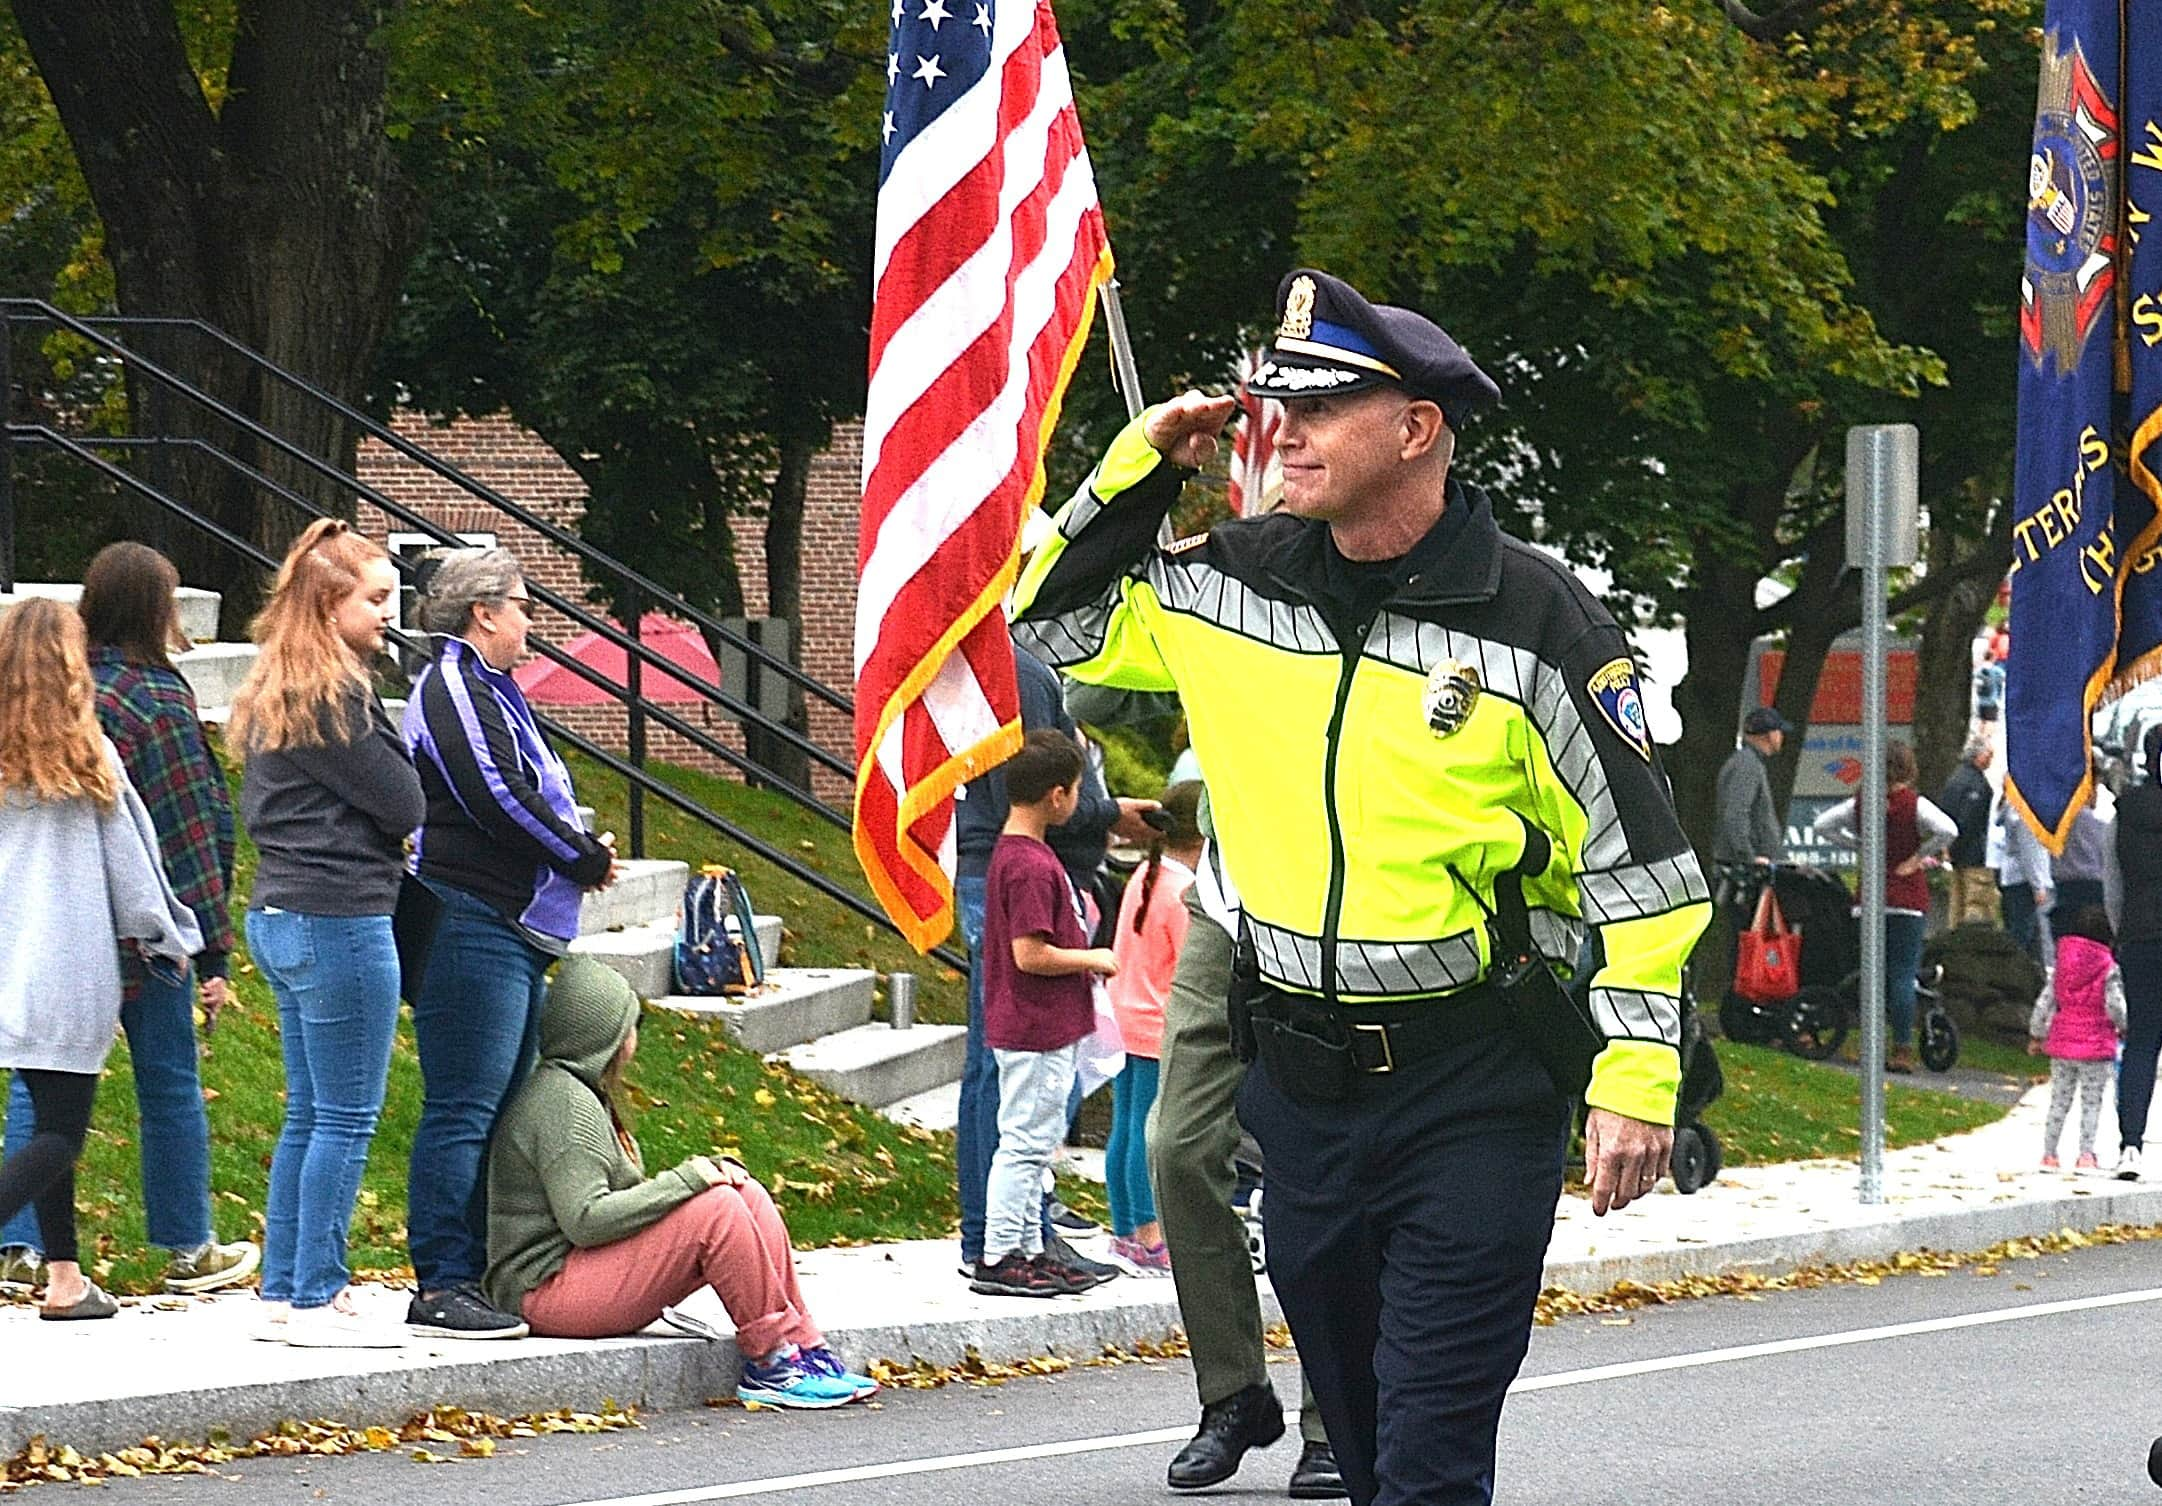 Police Chief Kenneth Paulhus salutes as he leads the Southborough Heritage Day parade.